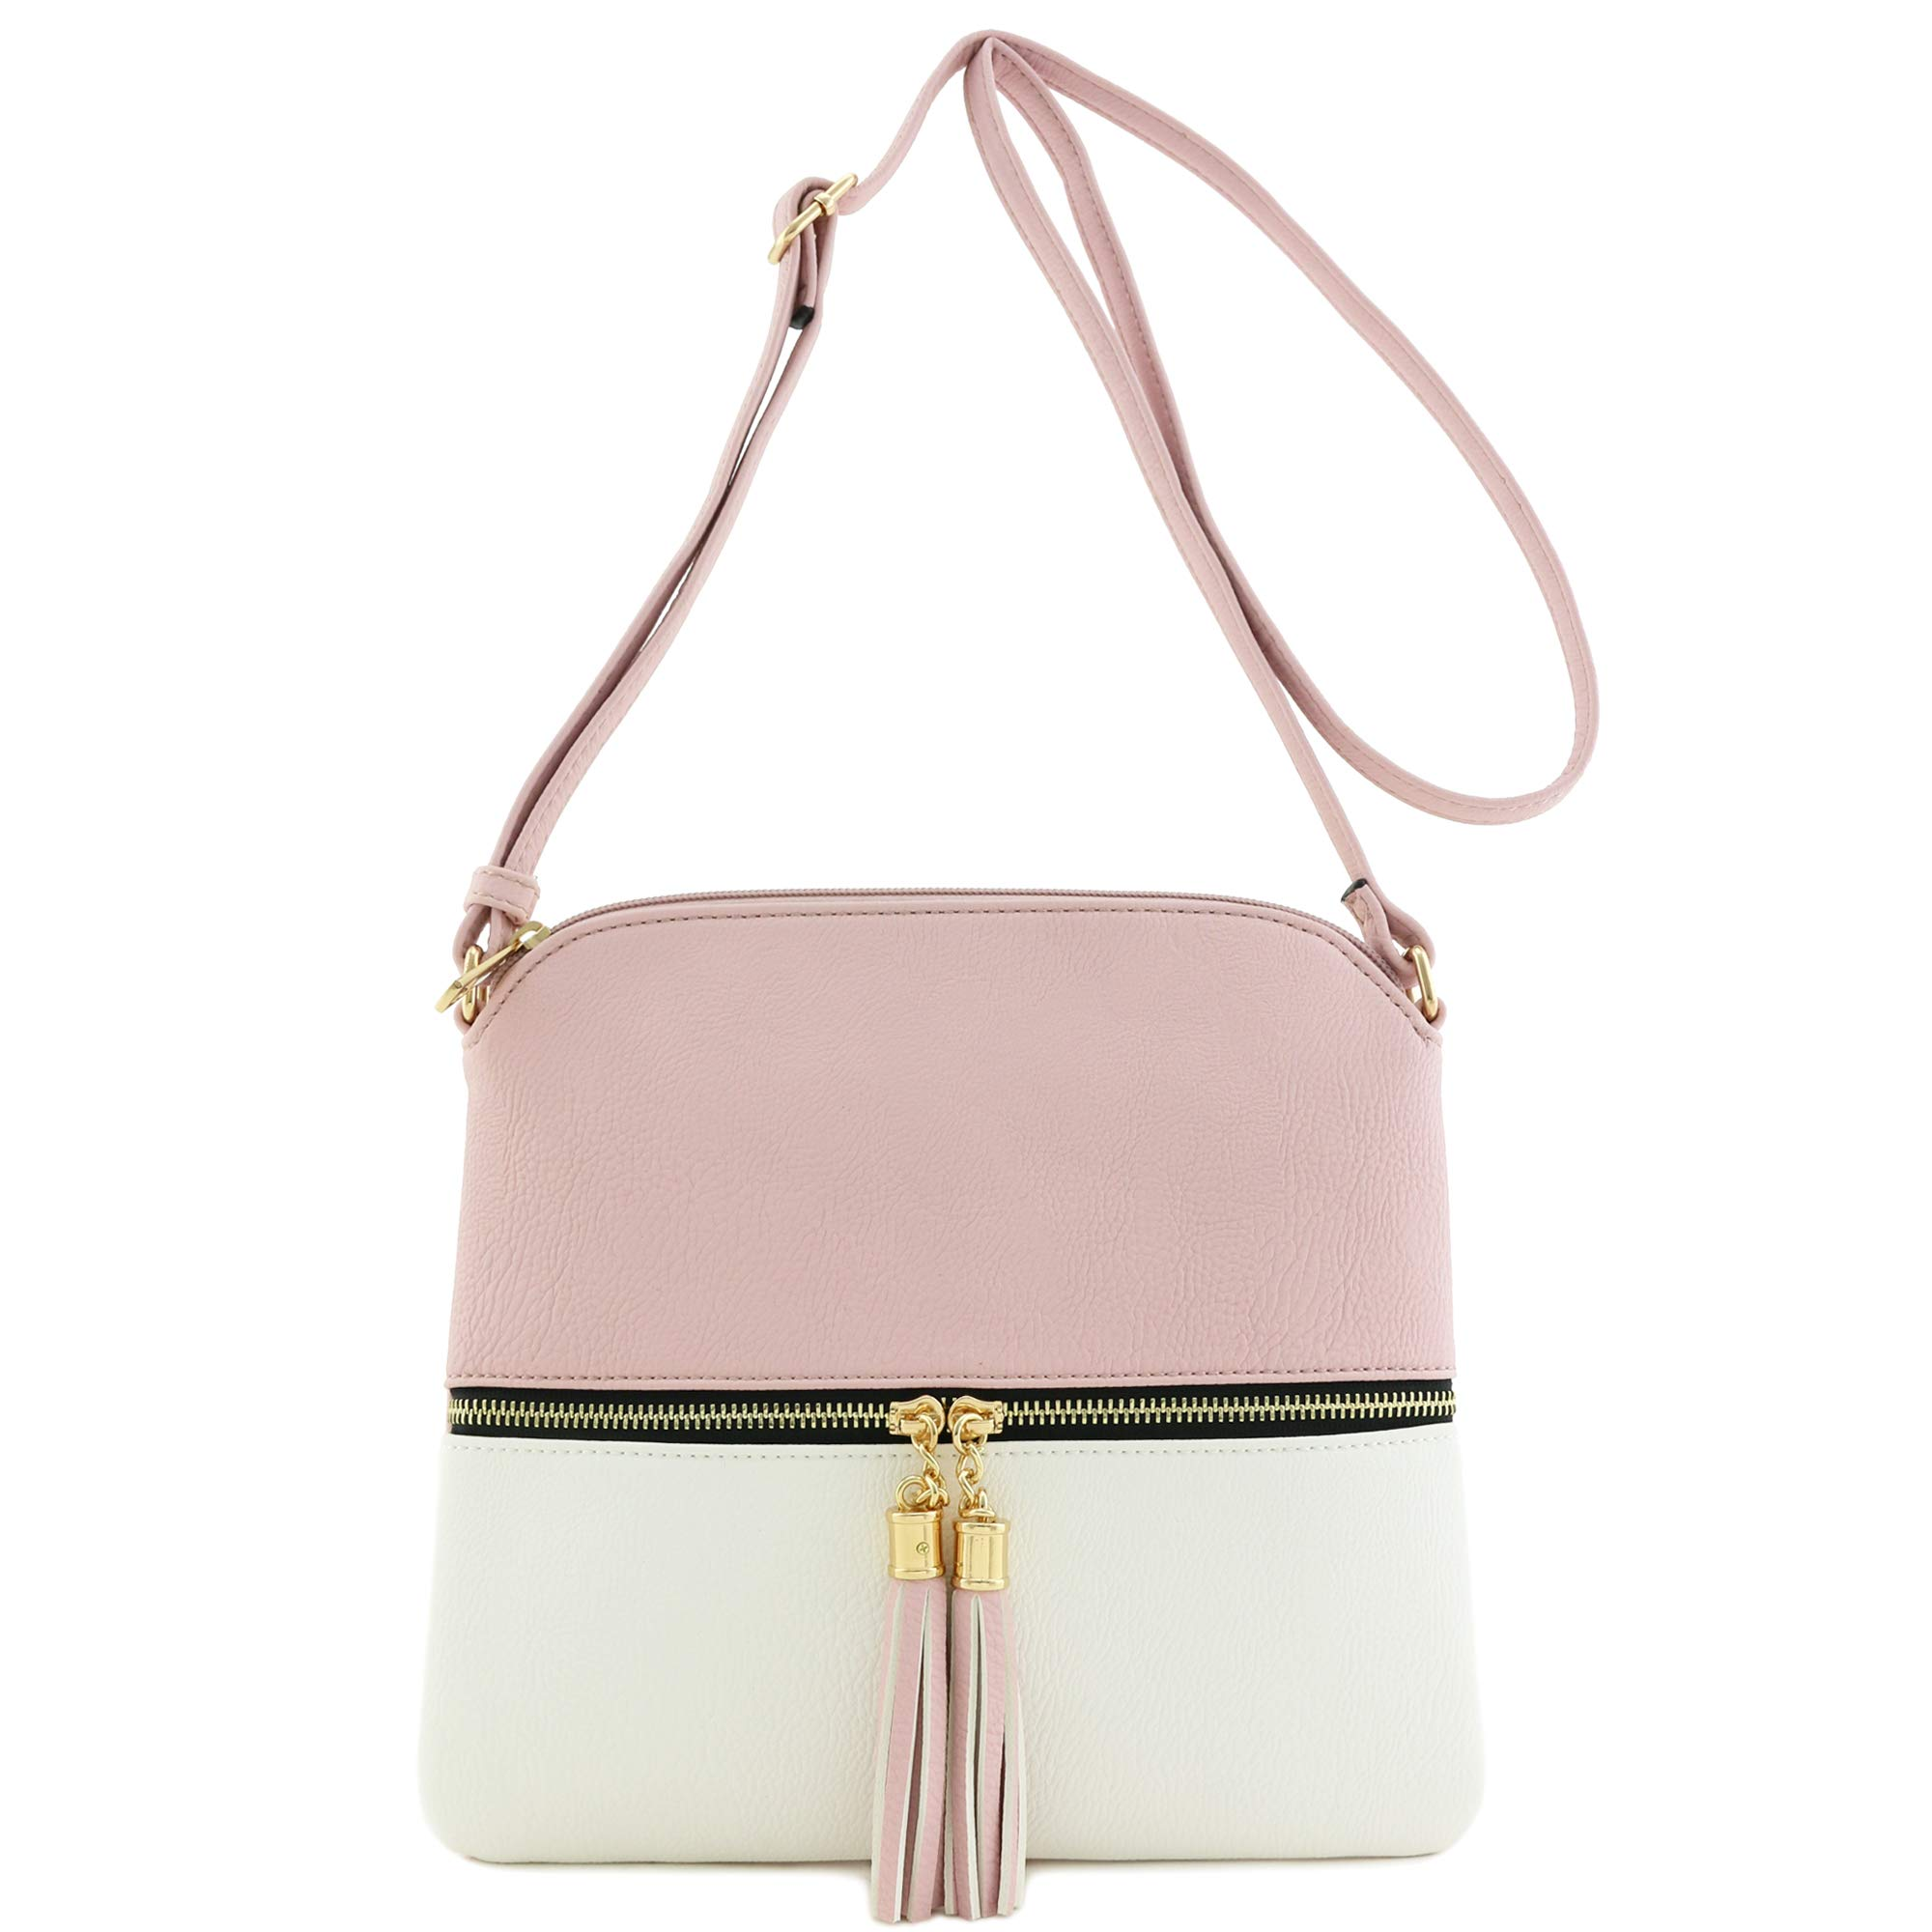 Lightweight Colorblock Medium Crossbody Bag with Tassel (Blush/White) by DELUXITY (Image #2)